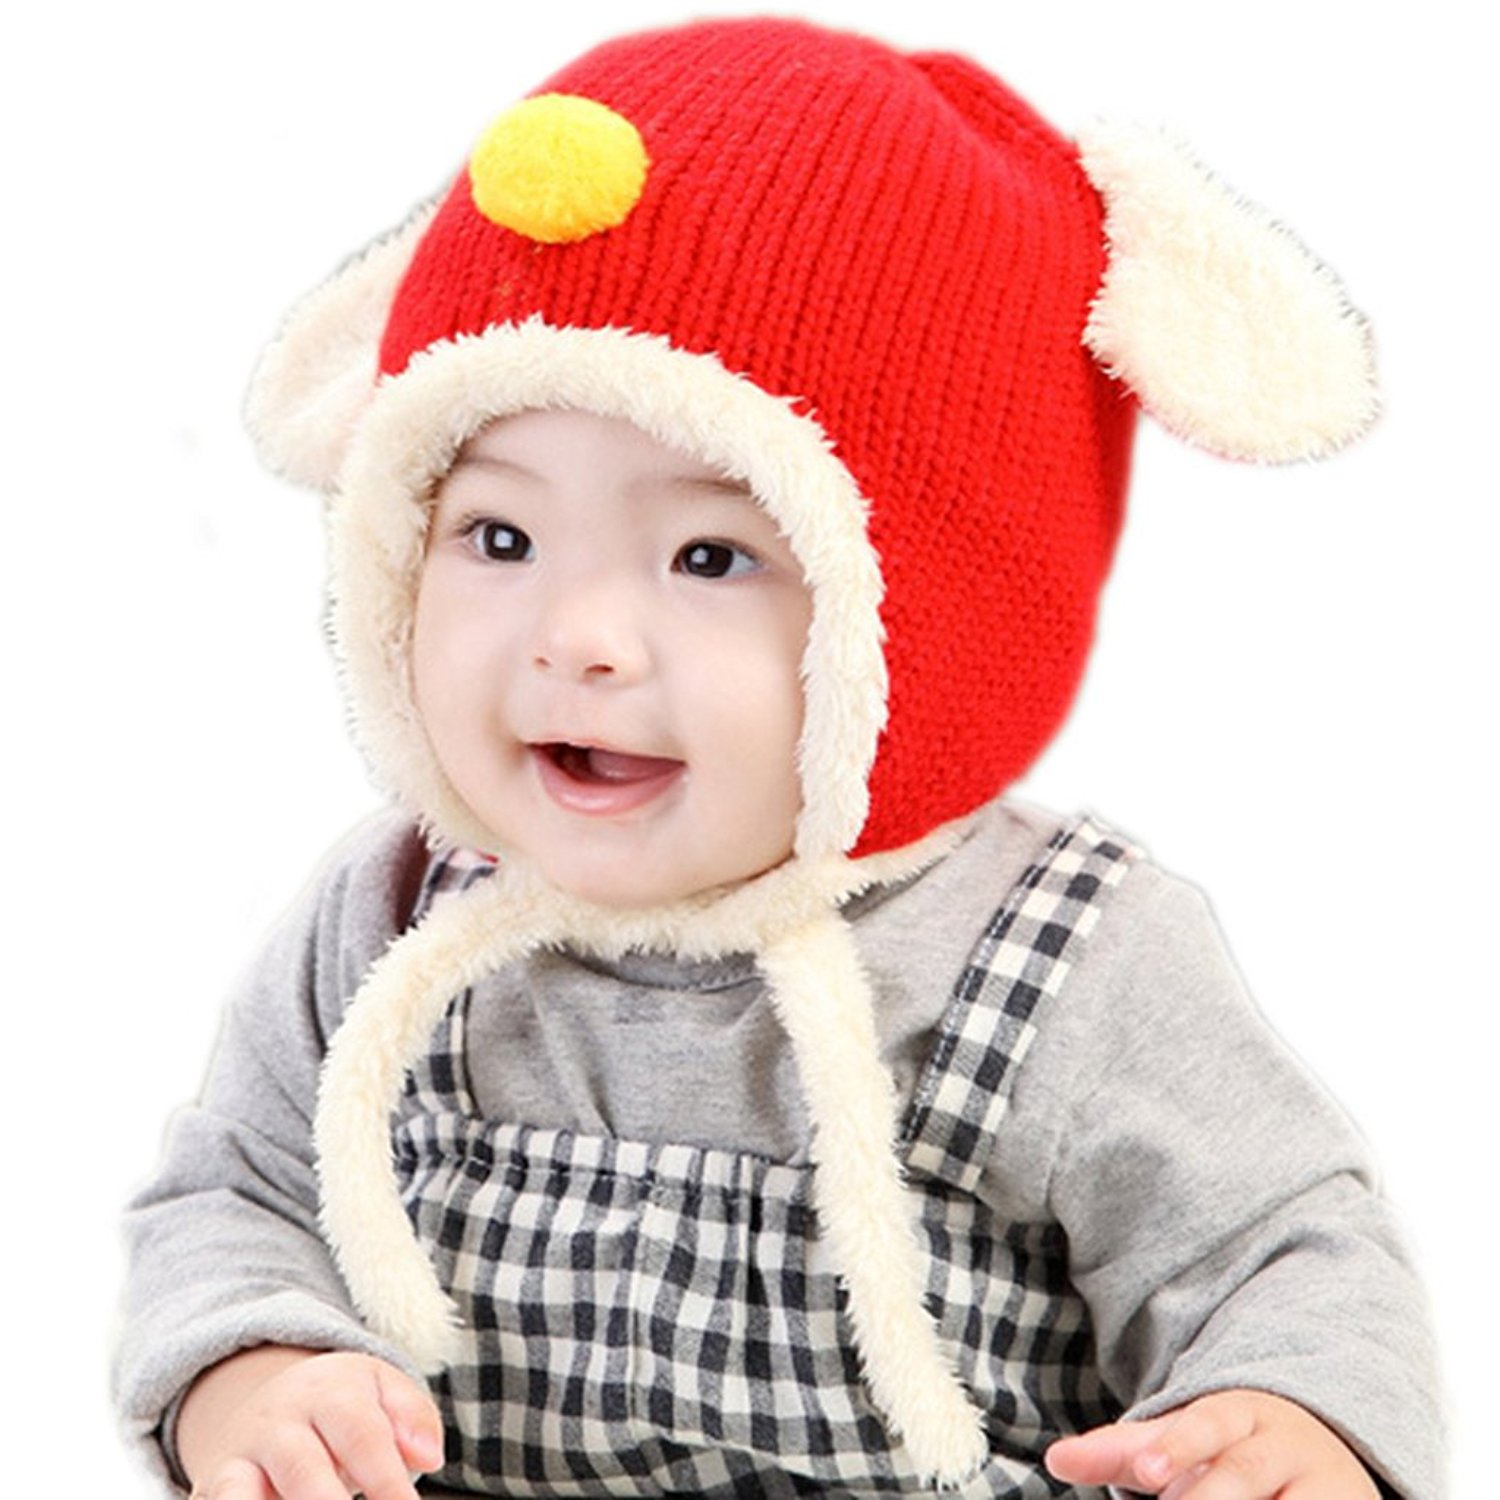 d5300a8043547 Get Quotations · RIY Baby Girls Boys Winter Bomber Trooper Hat Kids Knit  Sherpa Hats with EarFlap